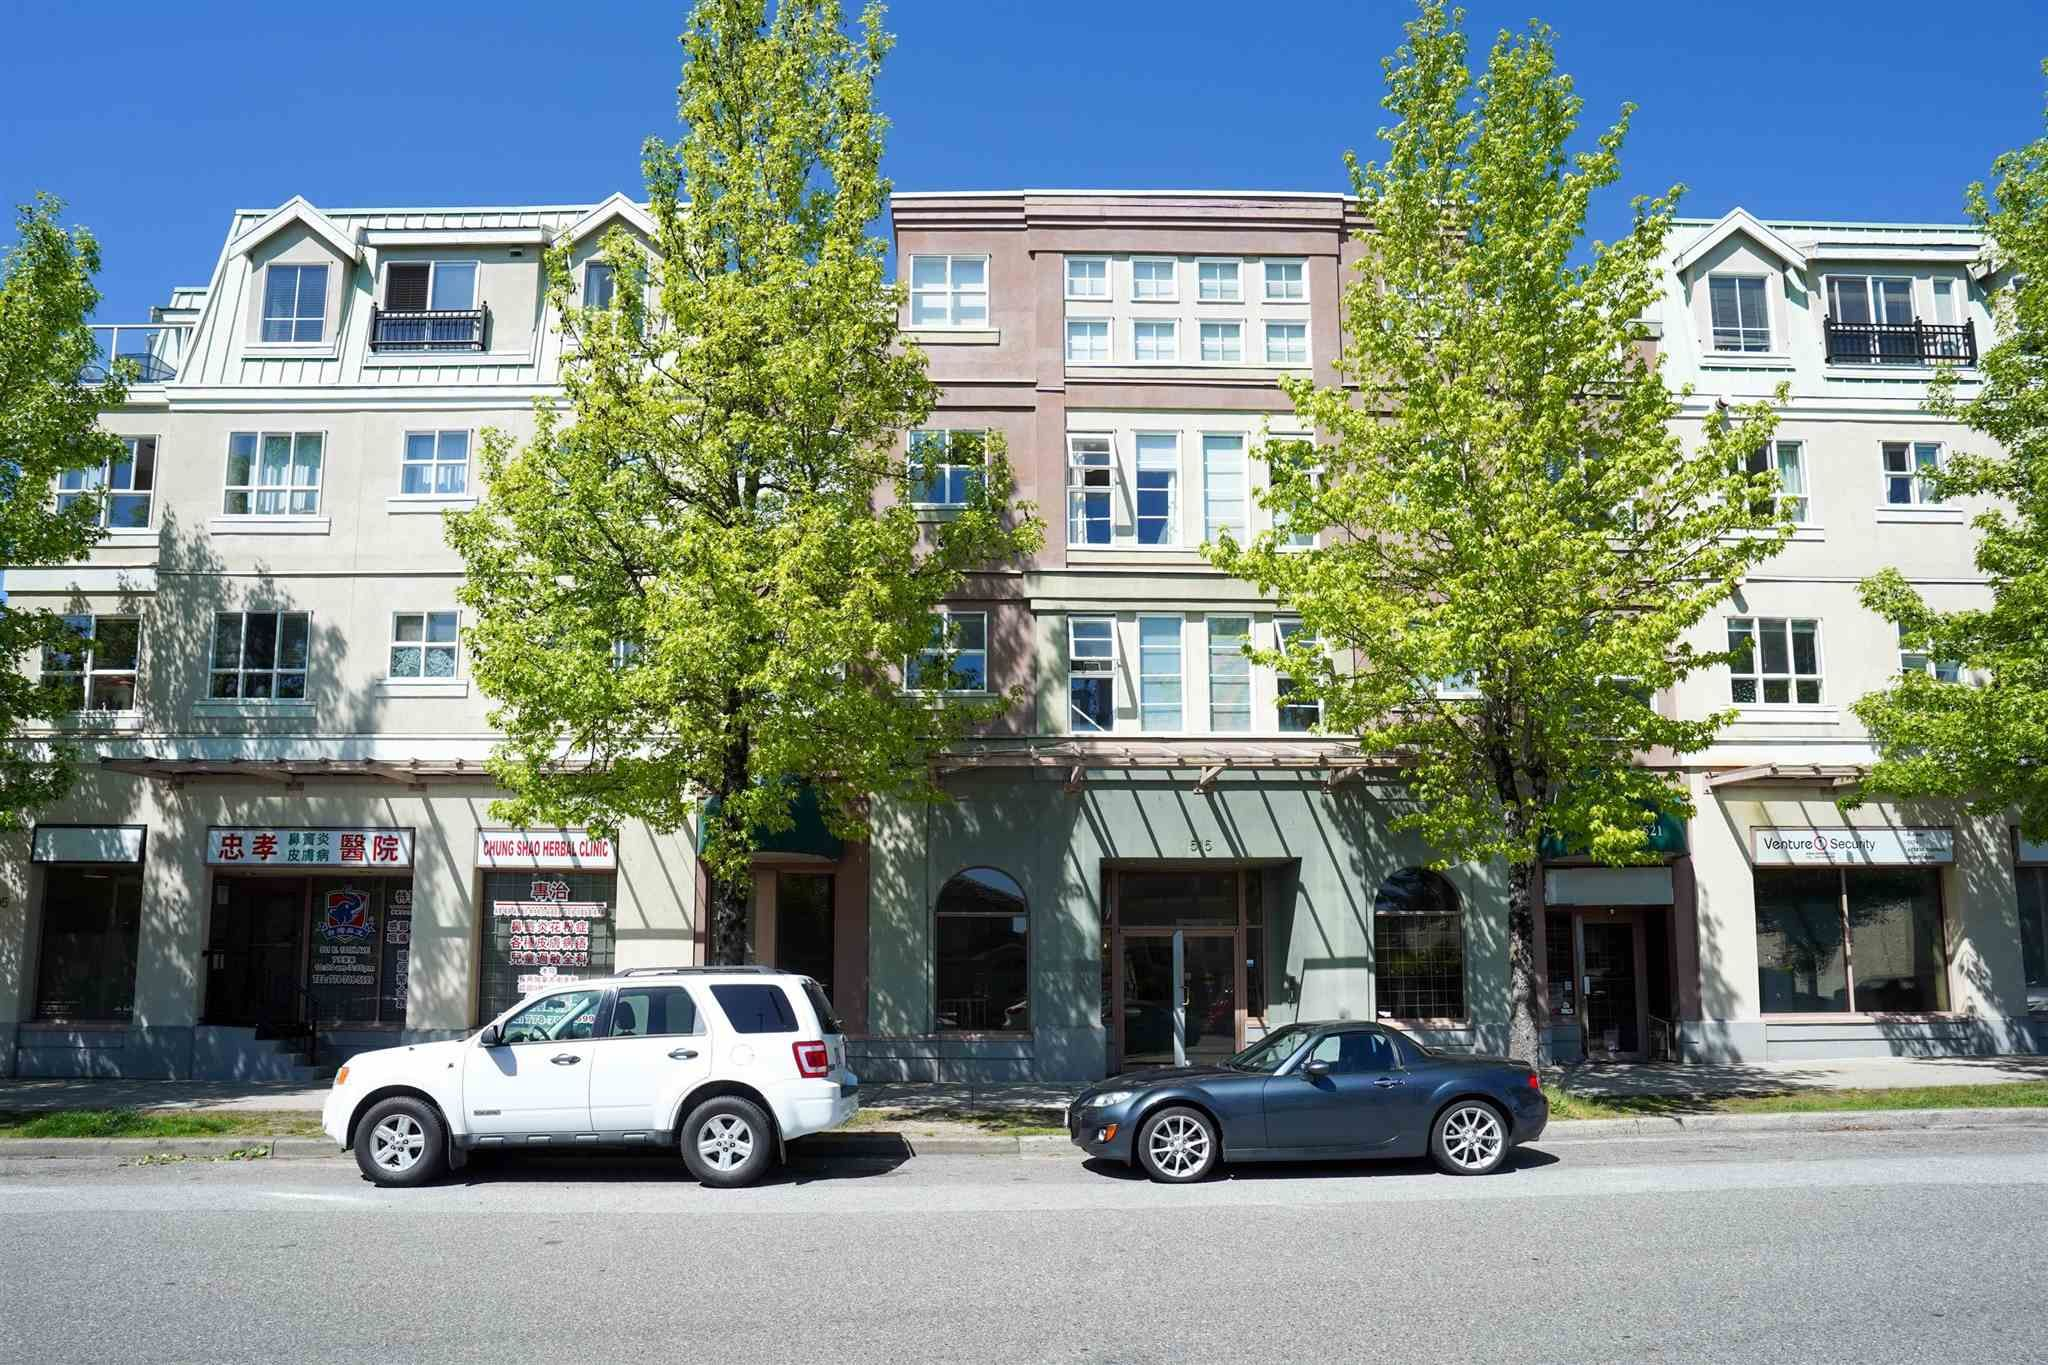 """Main Photo: W414 488 KINGSWAY in Vancouver: Mount Pleasant VE Condo for sale in """"HARVARD PLACE"""" (Vancouver East)  : MLS®# R2599545"""